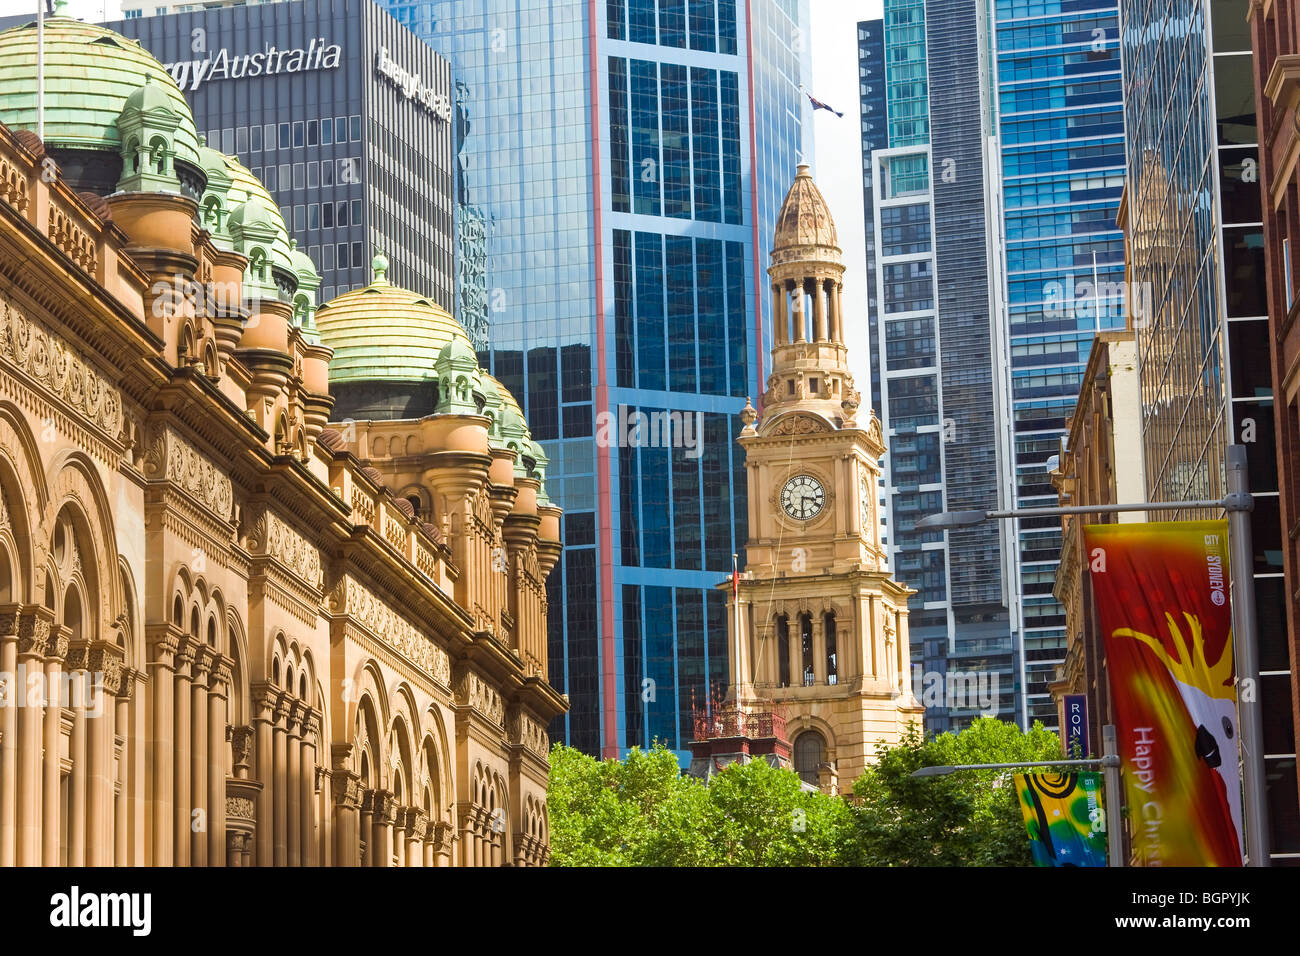 Australia, Sydney, Queen Victoria Building(left side) & Town Hall (with clock face) - Stock Image